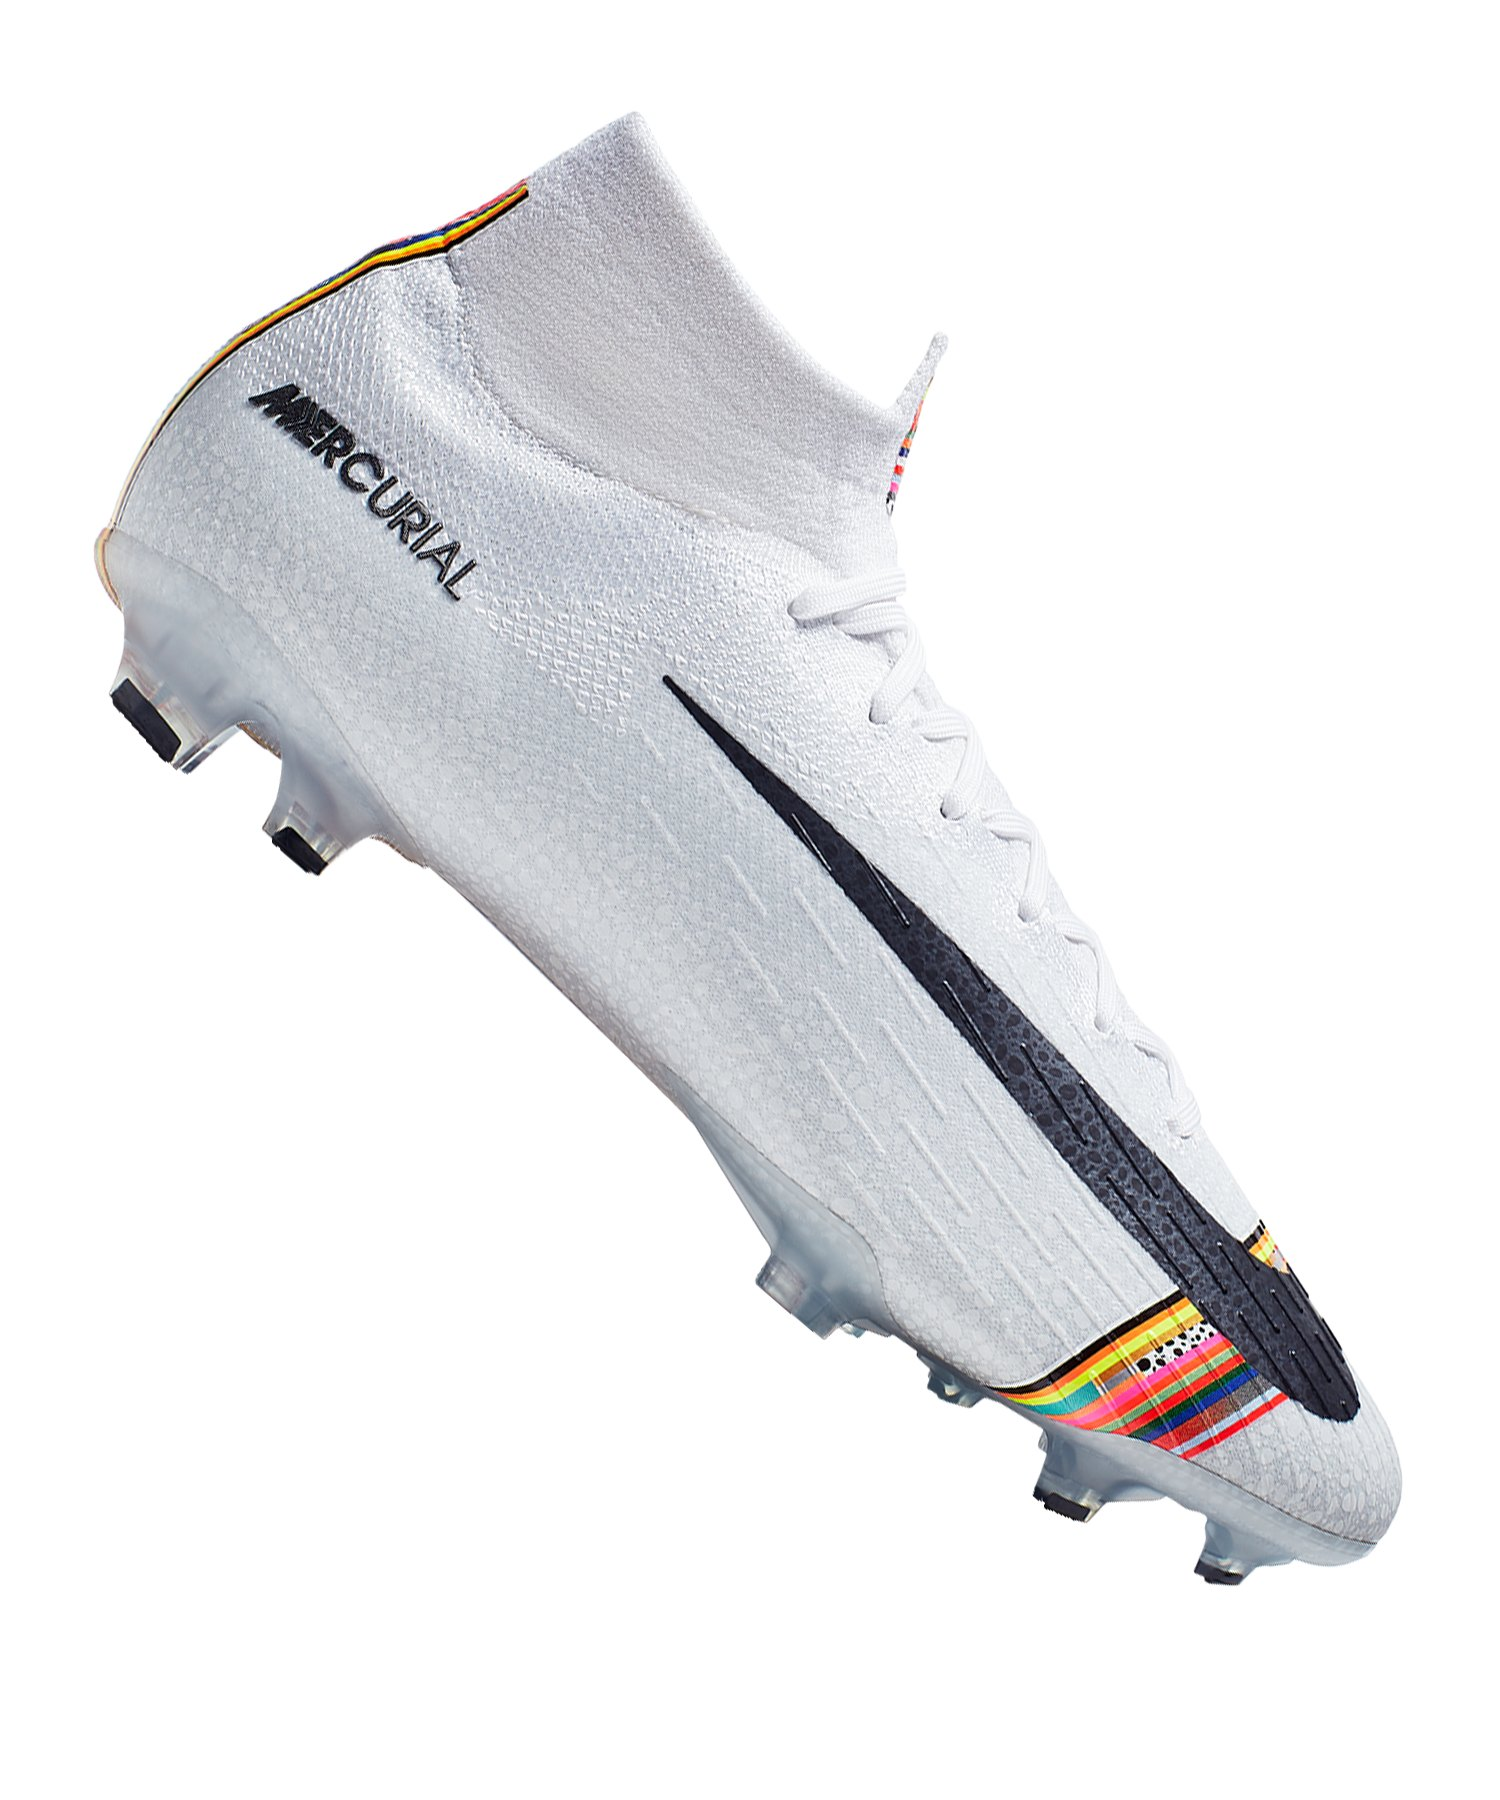 Weiss Vi F009 Mercurial Superfly Nike Elite Fg L354AqRj